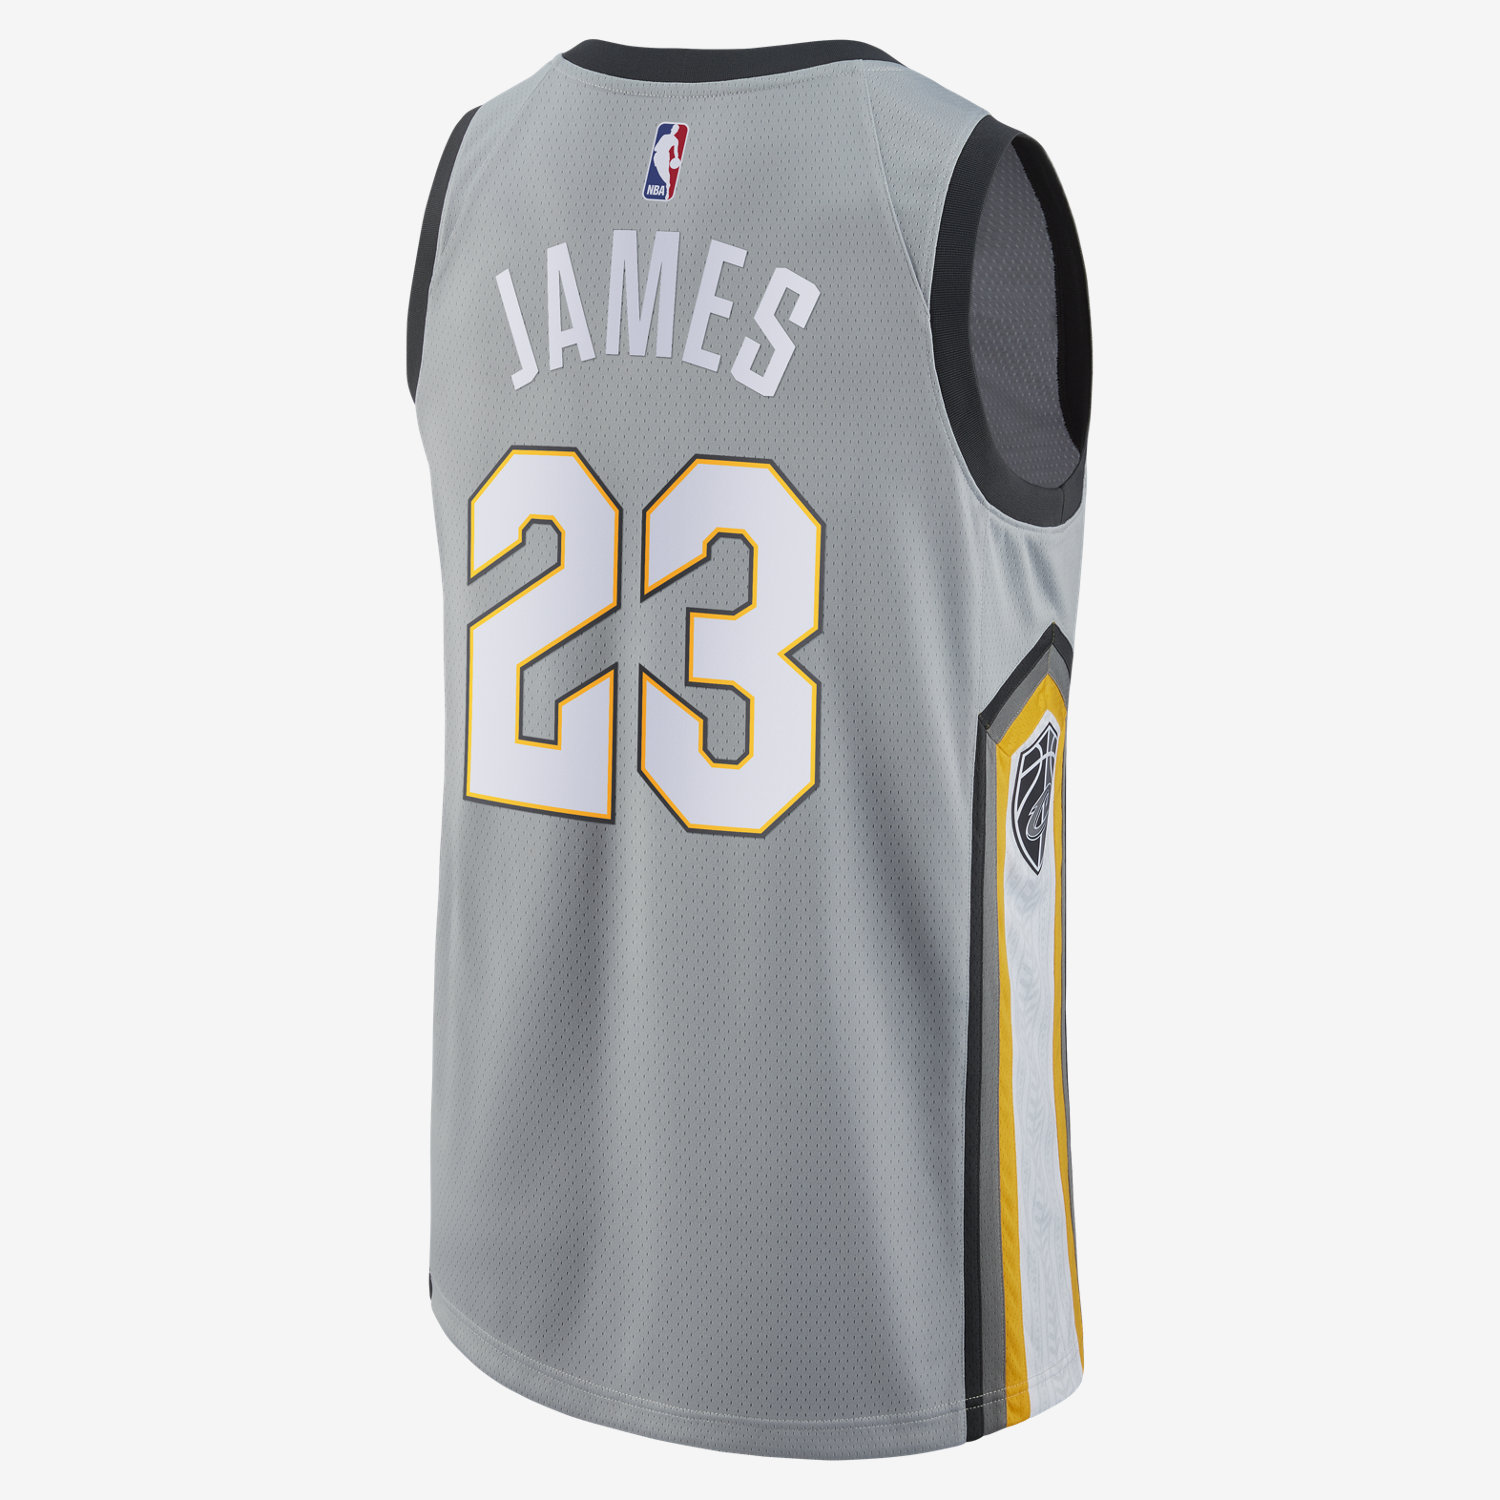 new styles 77a0c ae0a6 Nike NBA Cleveland Cavaliers LeBron James City Edition ...